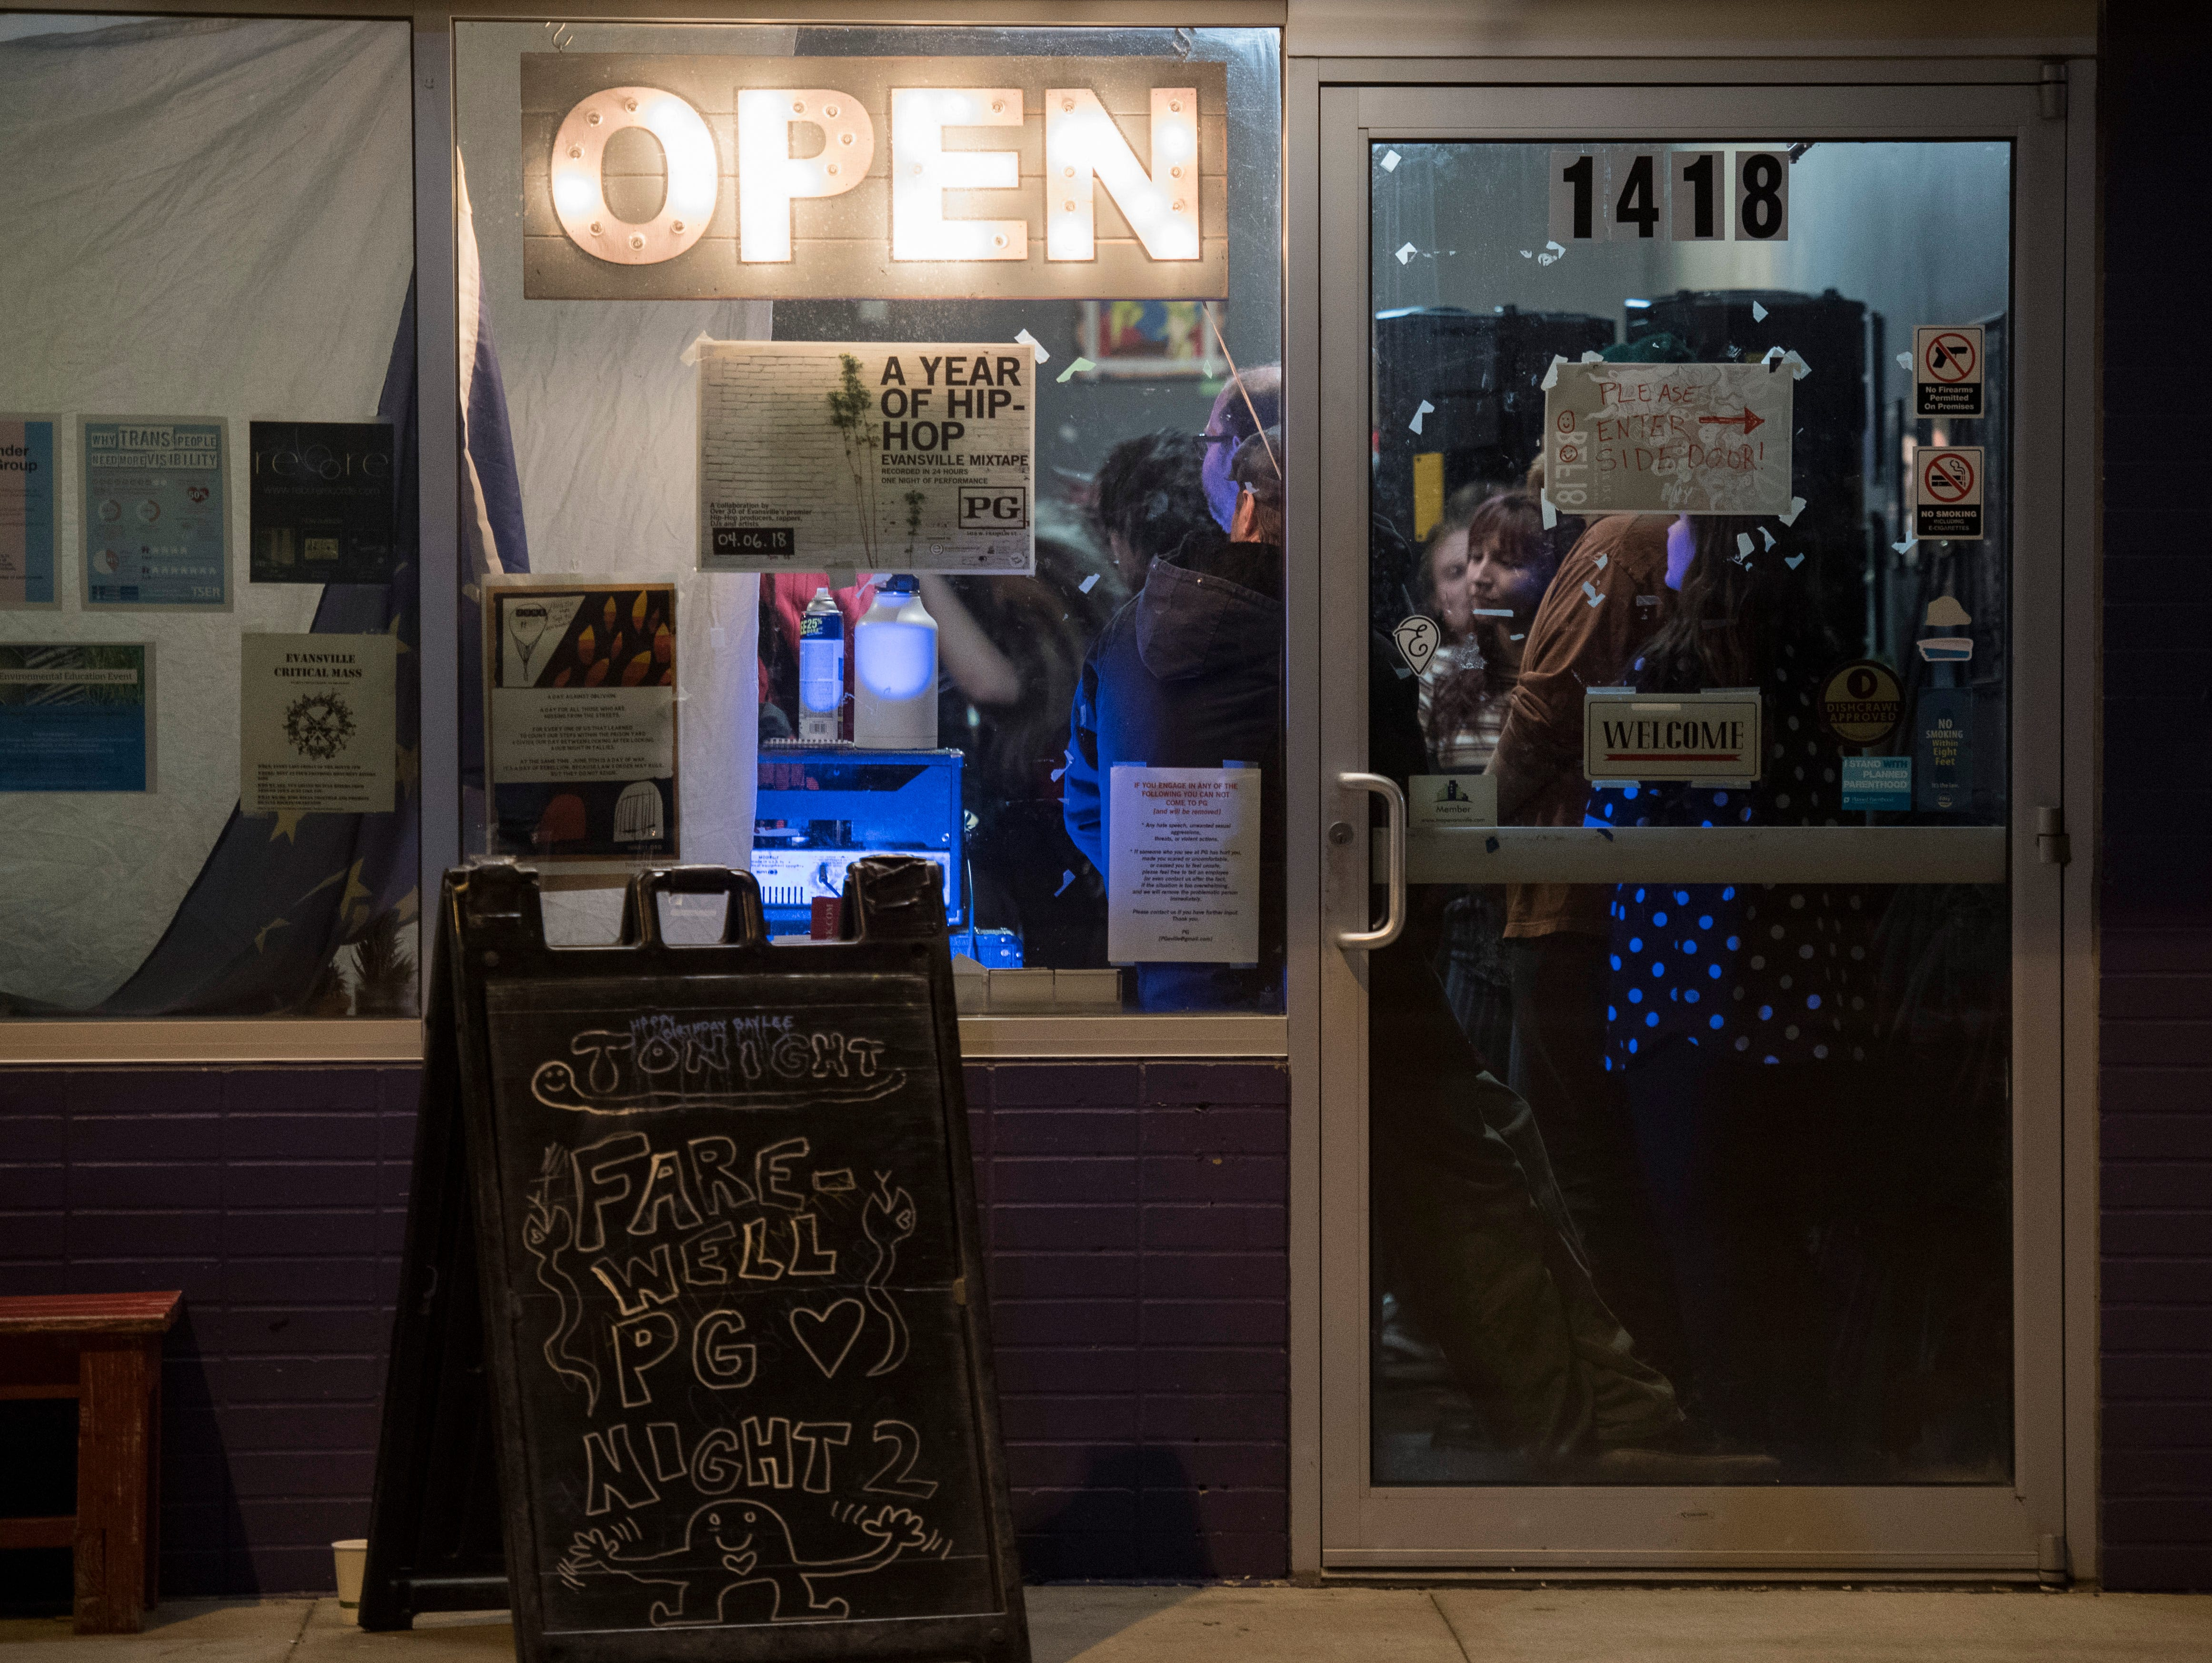 """Saturday was one of the last times the open sign will be lit at PG. PG -- a cafe, art and music venue -- opened March 15, 2013, and has served as a gathering place for the creative community in Evansville. """"We always survive,"""" said owner Todd Elkshow Huber.  Their final day open is Monday, Dec. 31, 2018."""